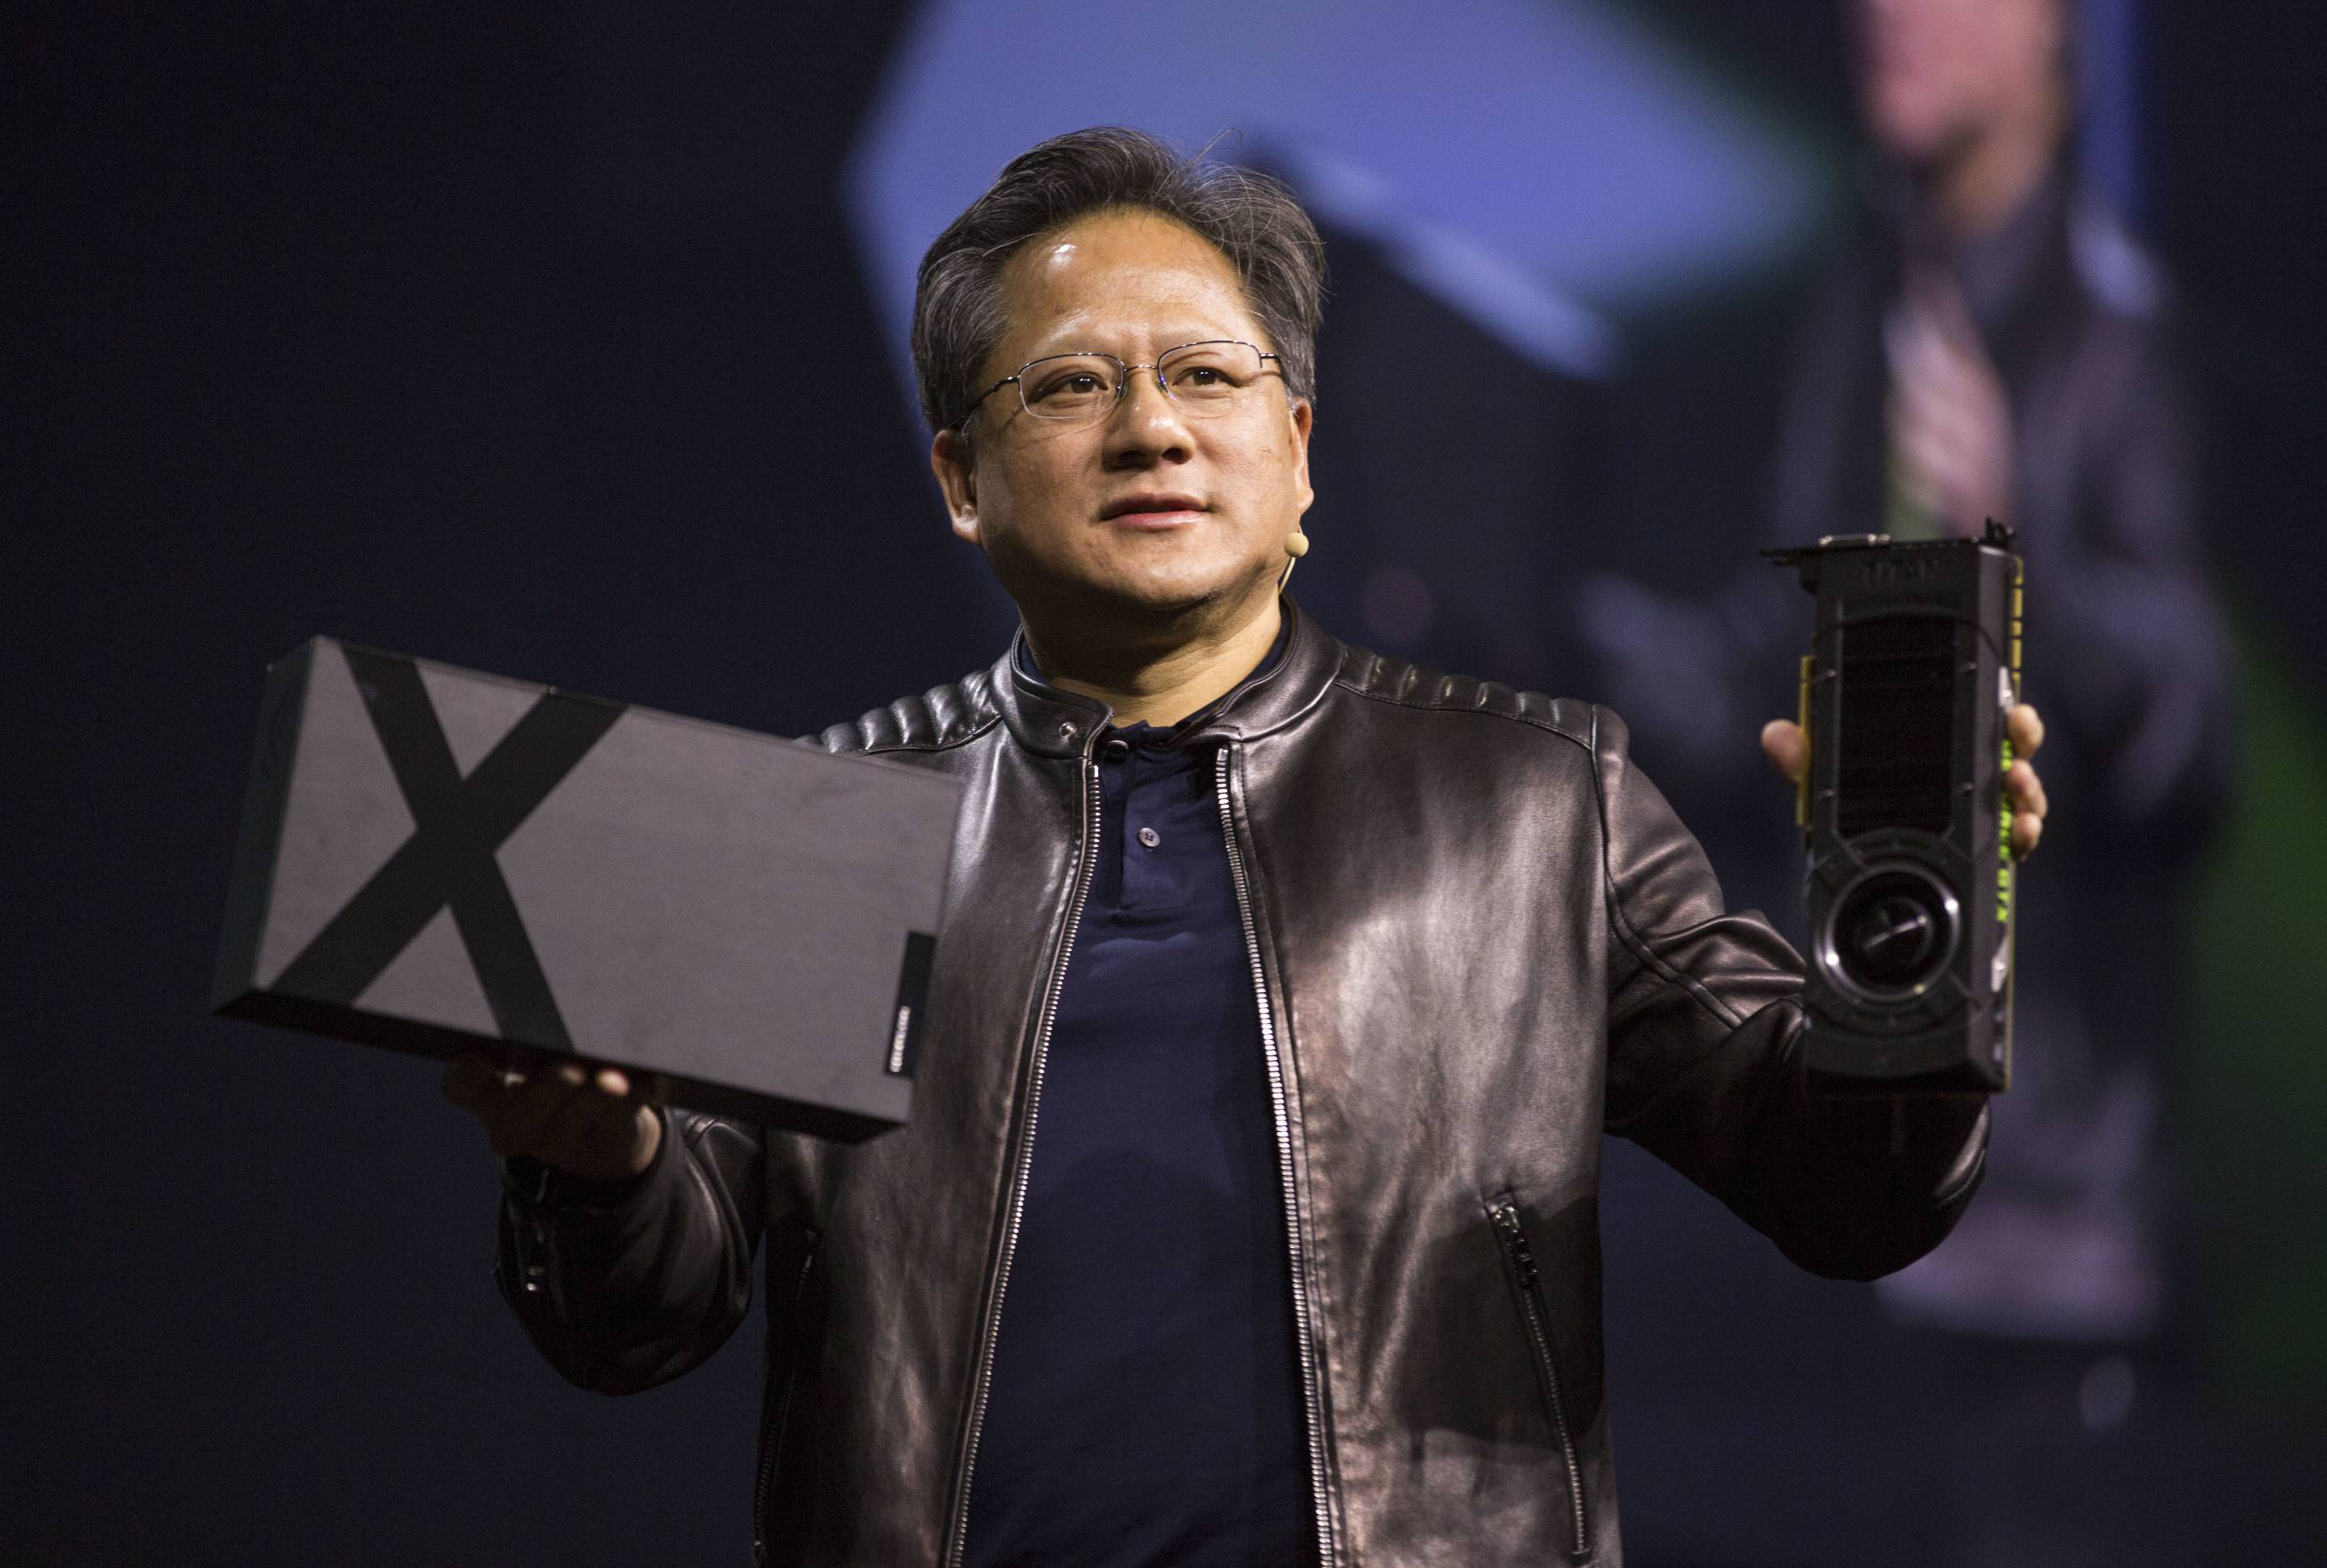 Nvidia CEO Jensen Huang shows off new graphics cards during the GPU Technology Conference in San Jose, Calif.